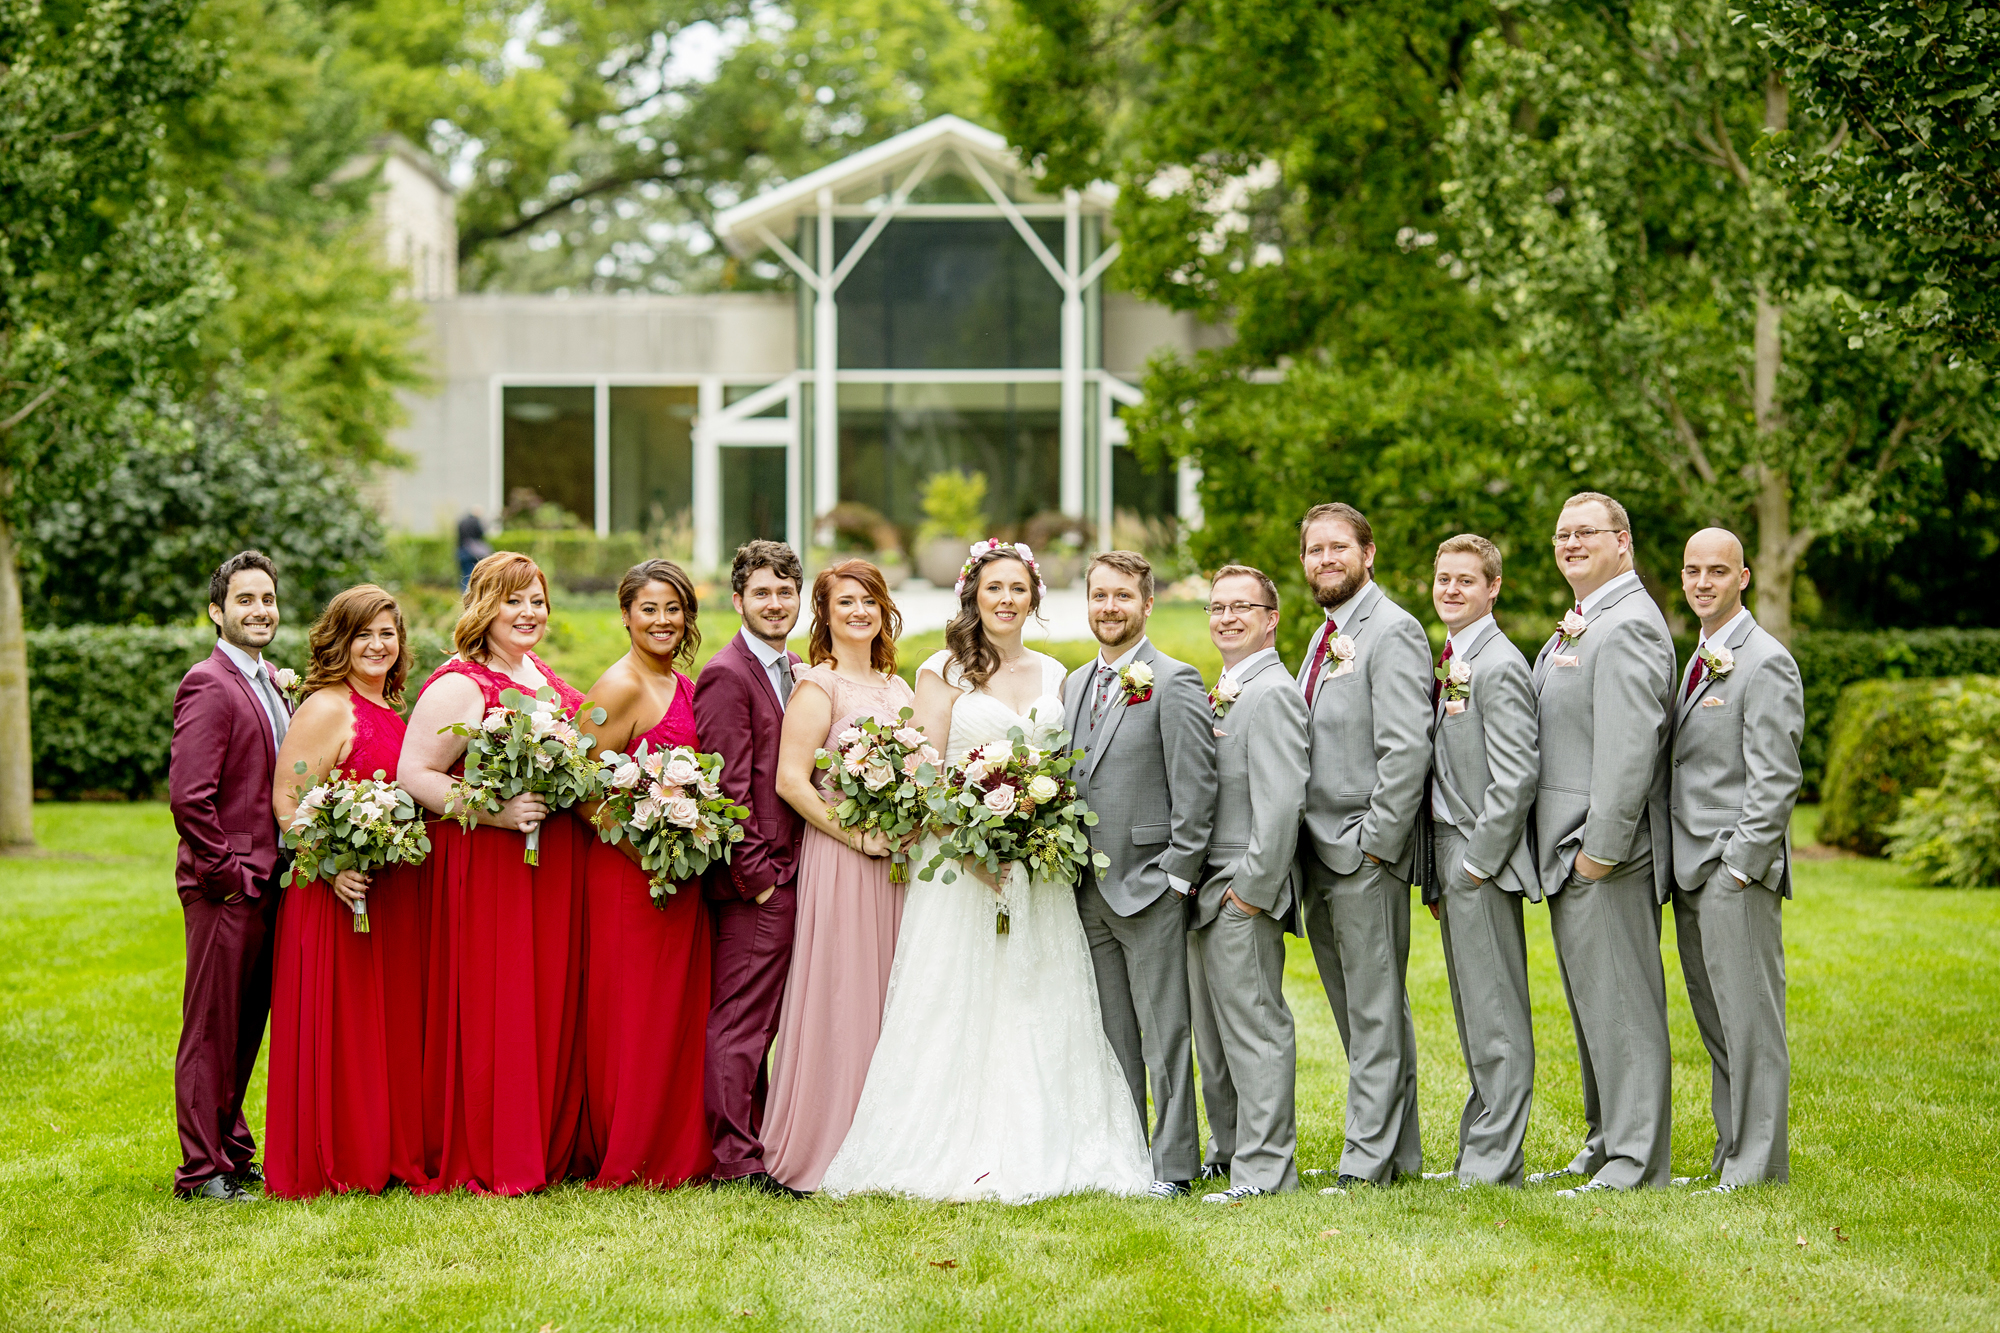 Seriously_Sabrina_Photography_Lisle_Illinois_Morton_Arboretum_Wedding_Day_Gowen49.jpg